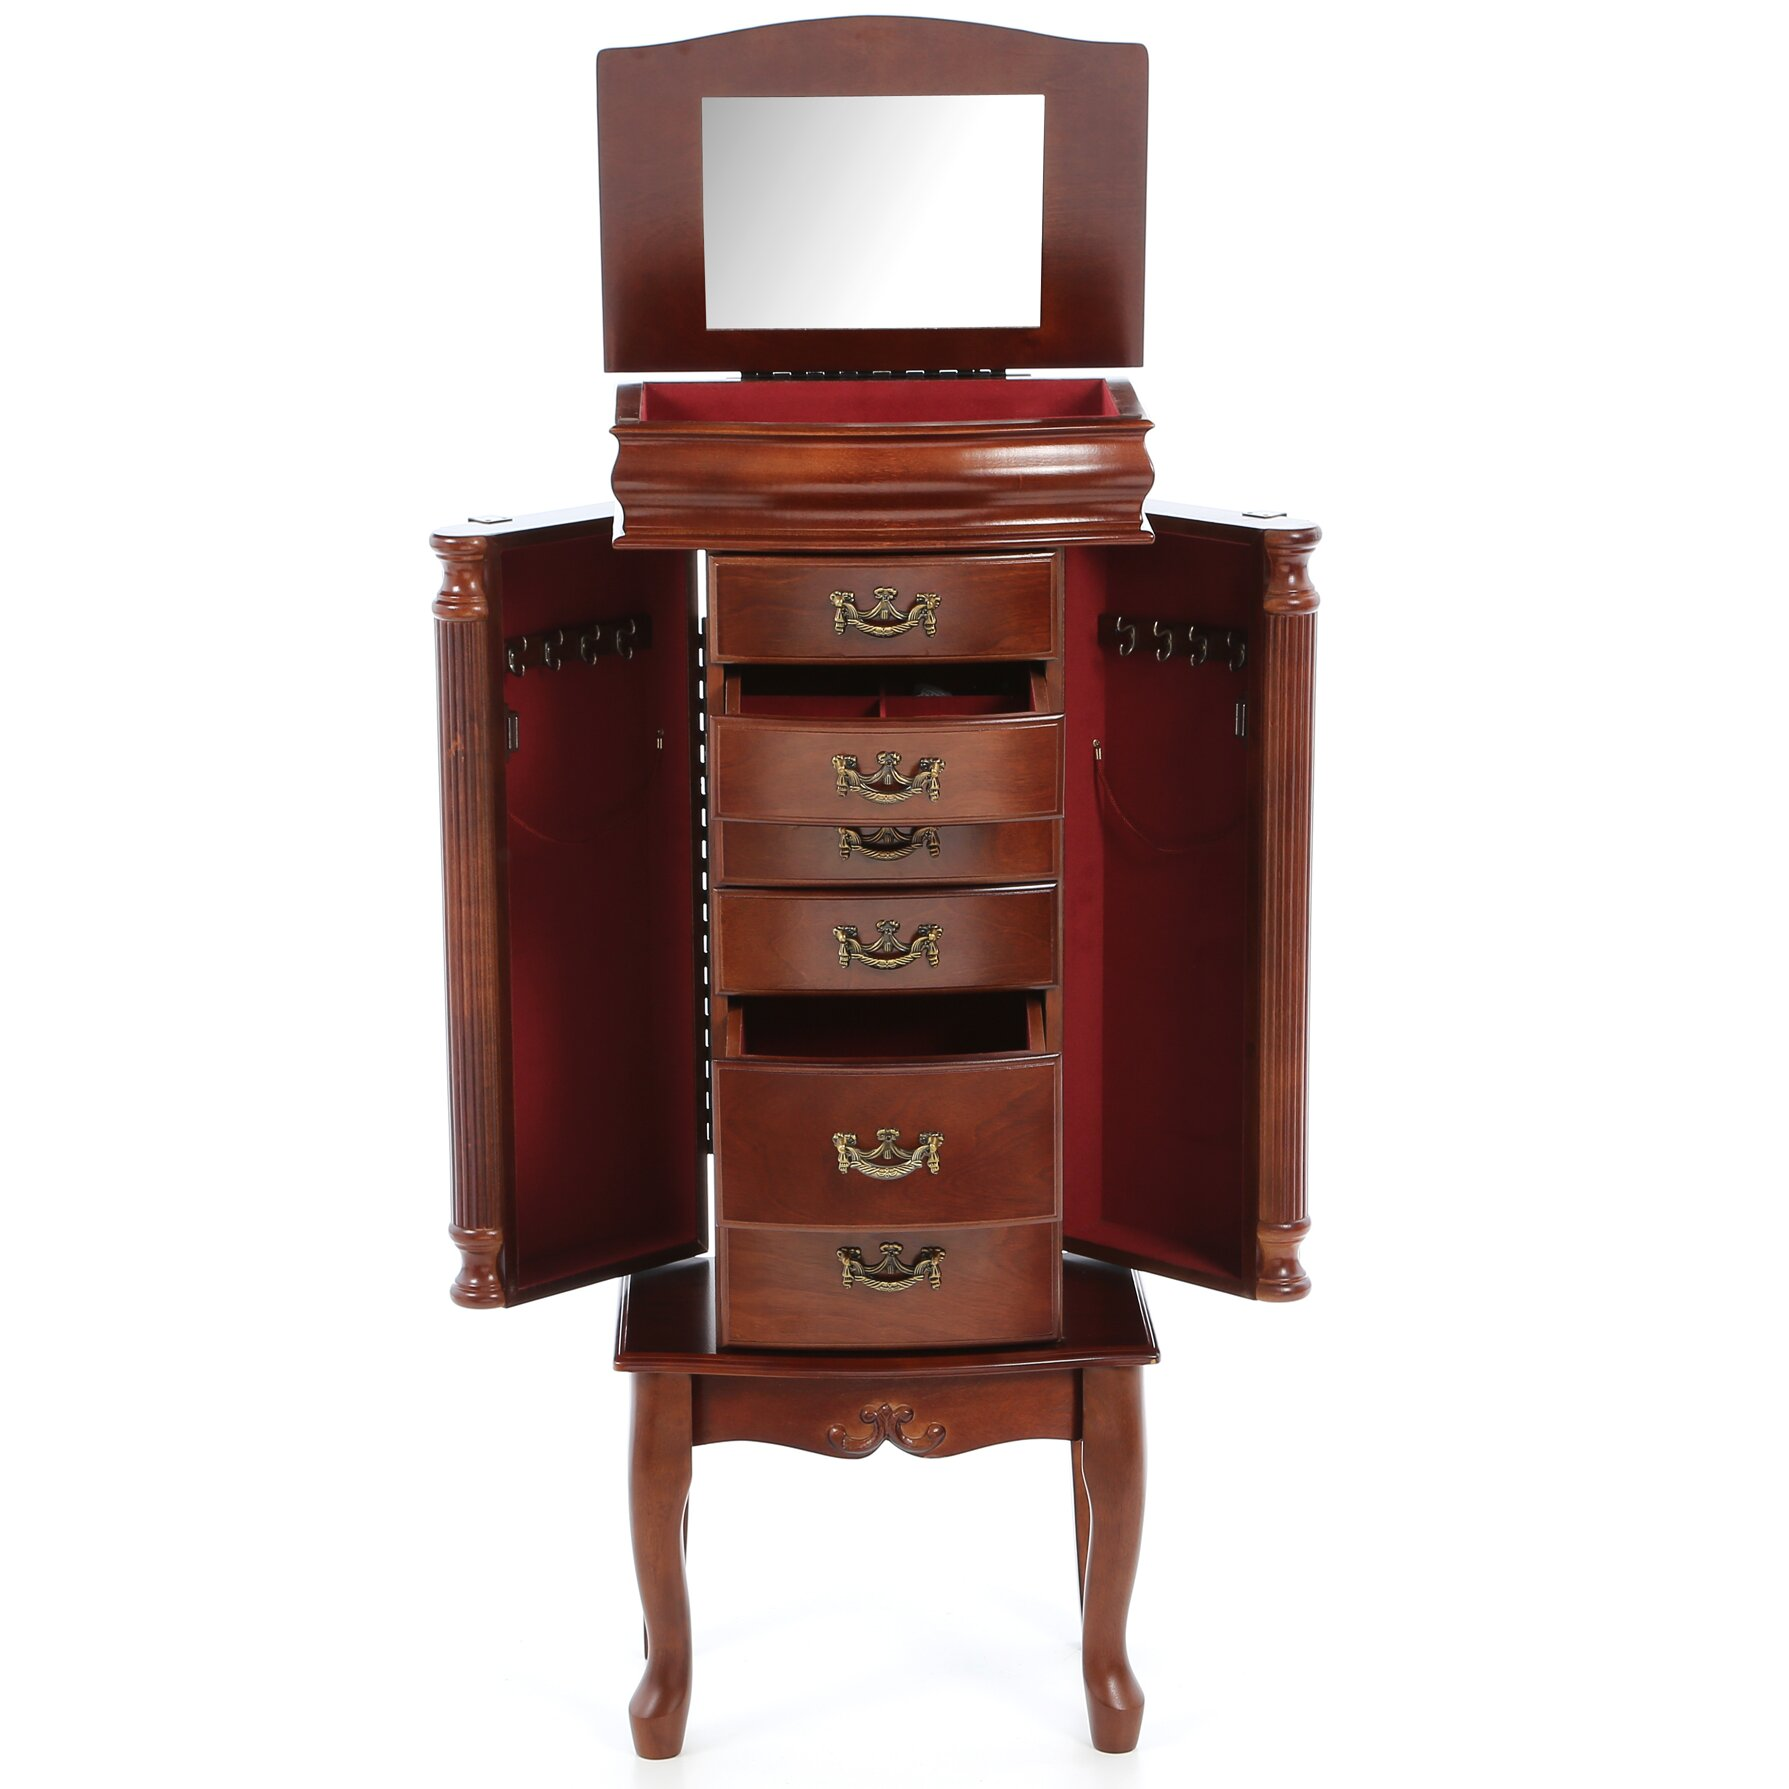 Antique Mahogany Dining Room Furniture Rosalind Wheeler Mullane Jewelry Armoire With Mirror